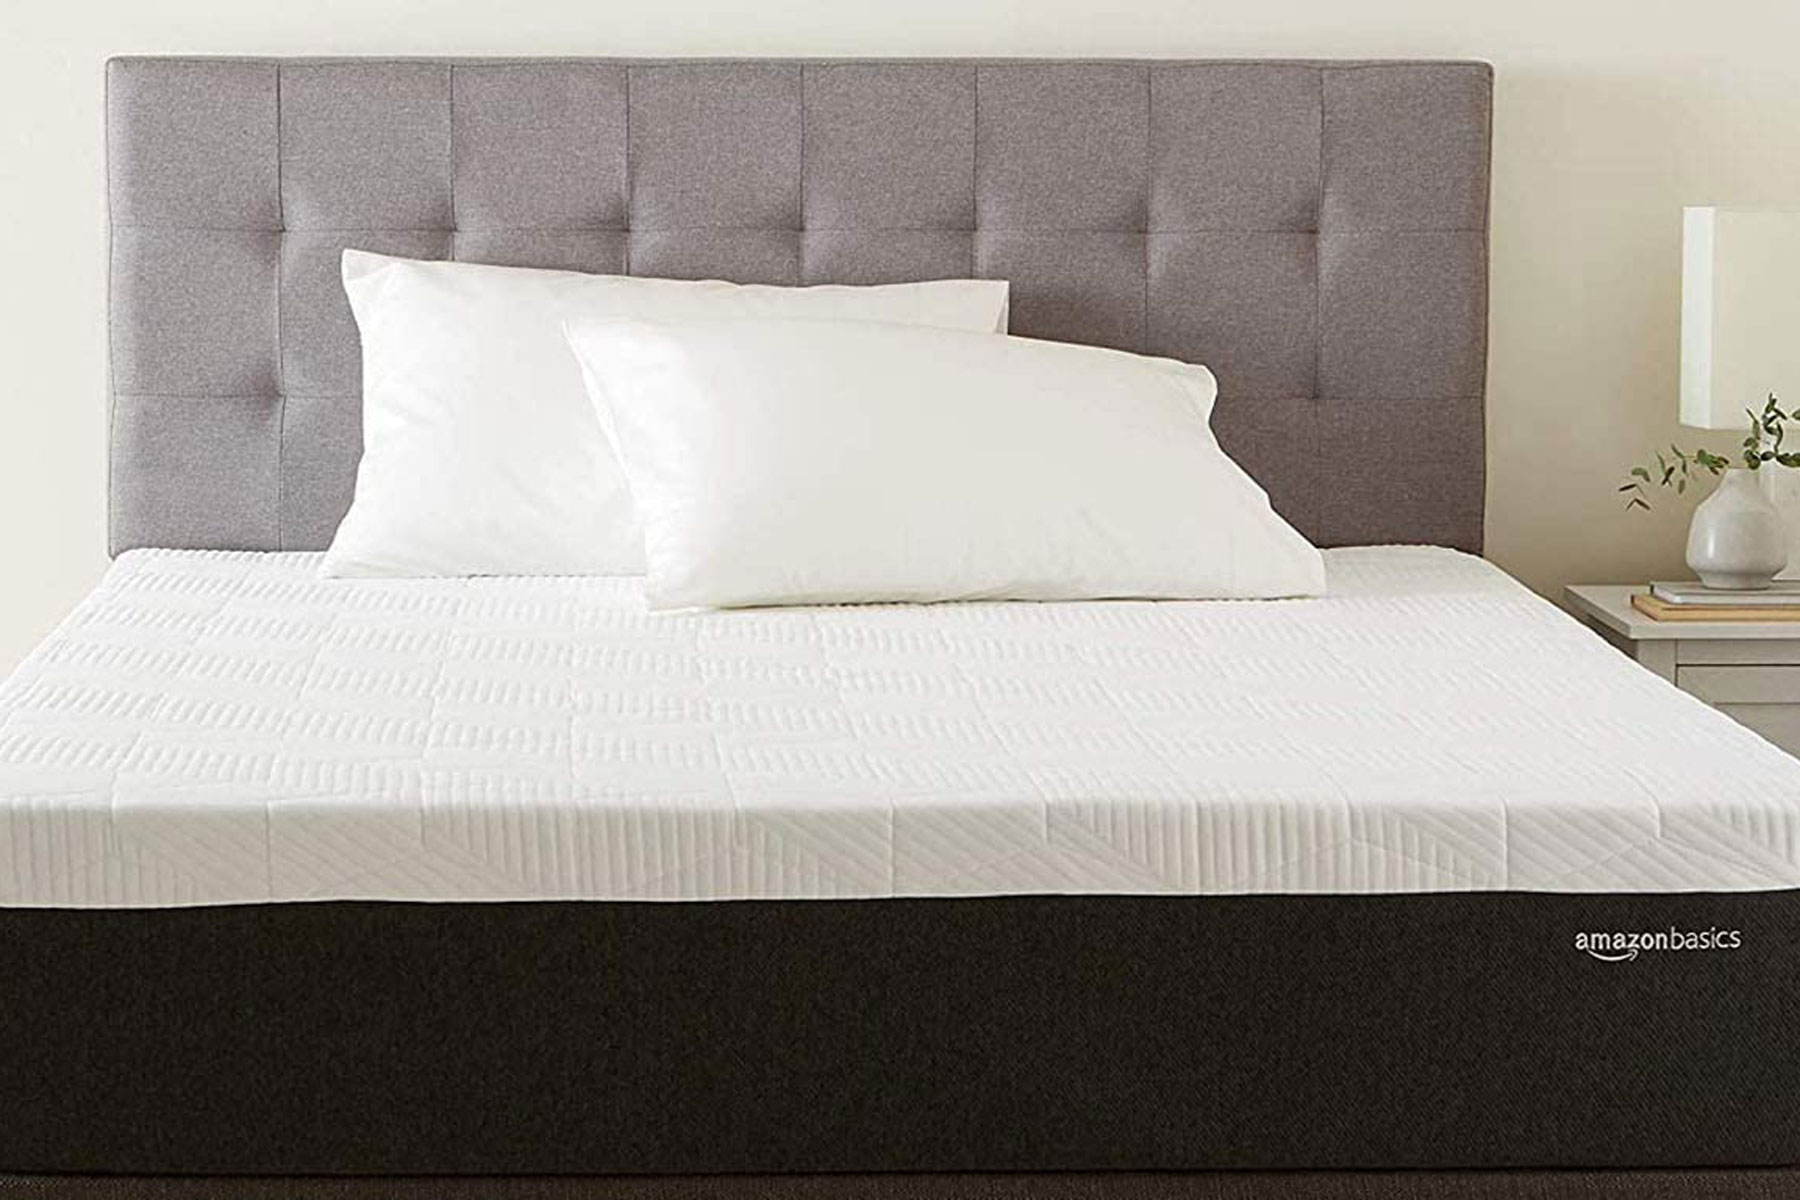 Mattress on bed with headboard